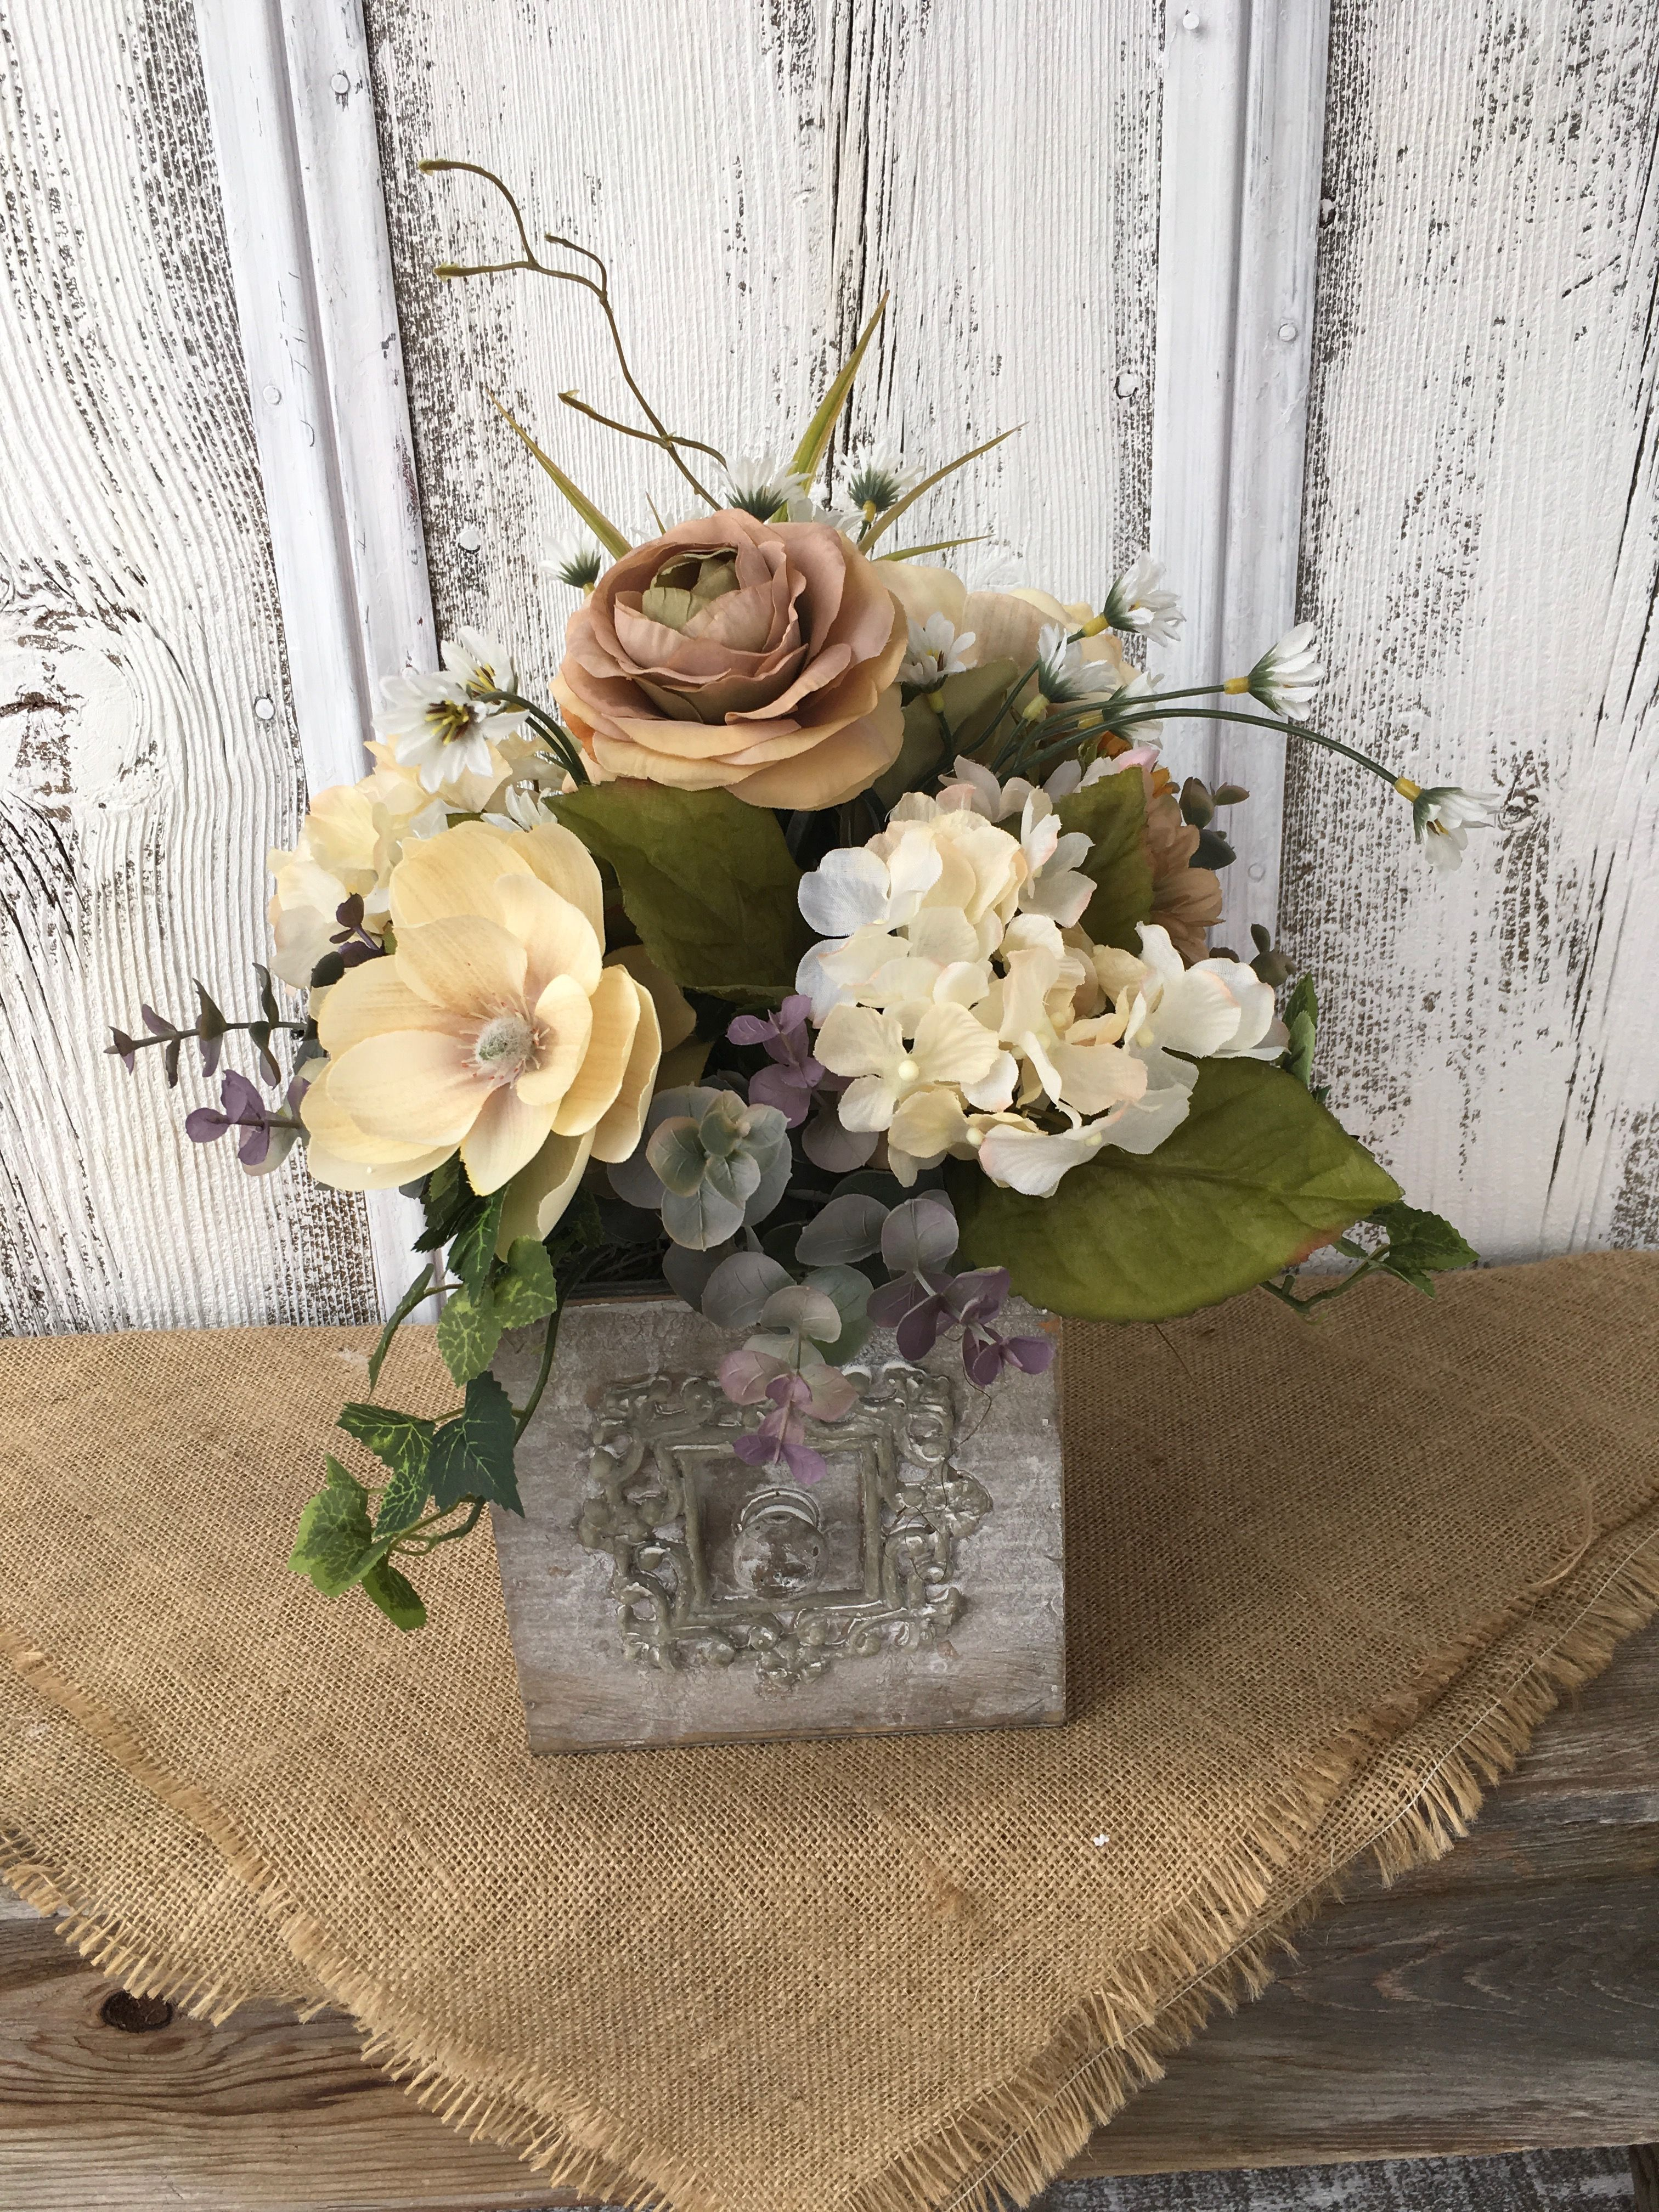 Pin By Glamorous Diva On Sheila S Floral And Primitive S On Etsy Rustic Flower Arrangements Floral Arrangements Diy Spring Floral Arrangements